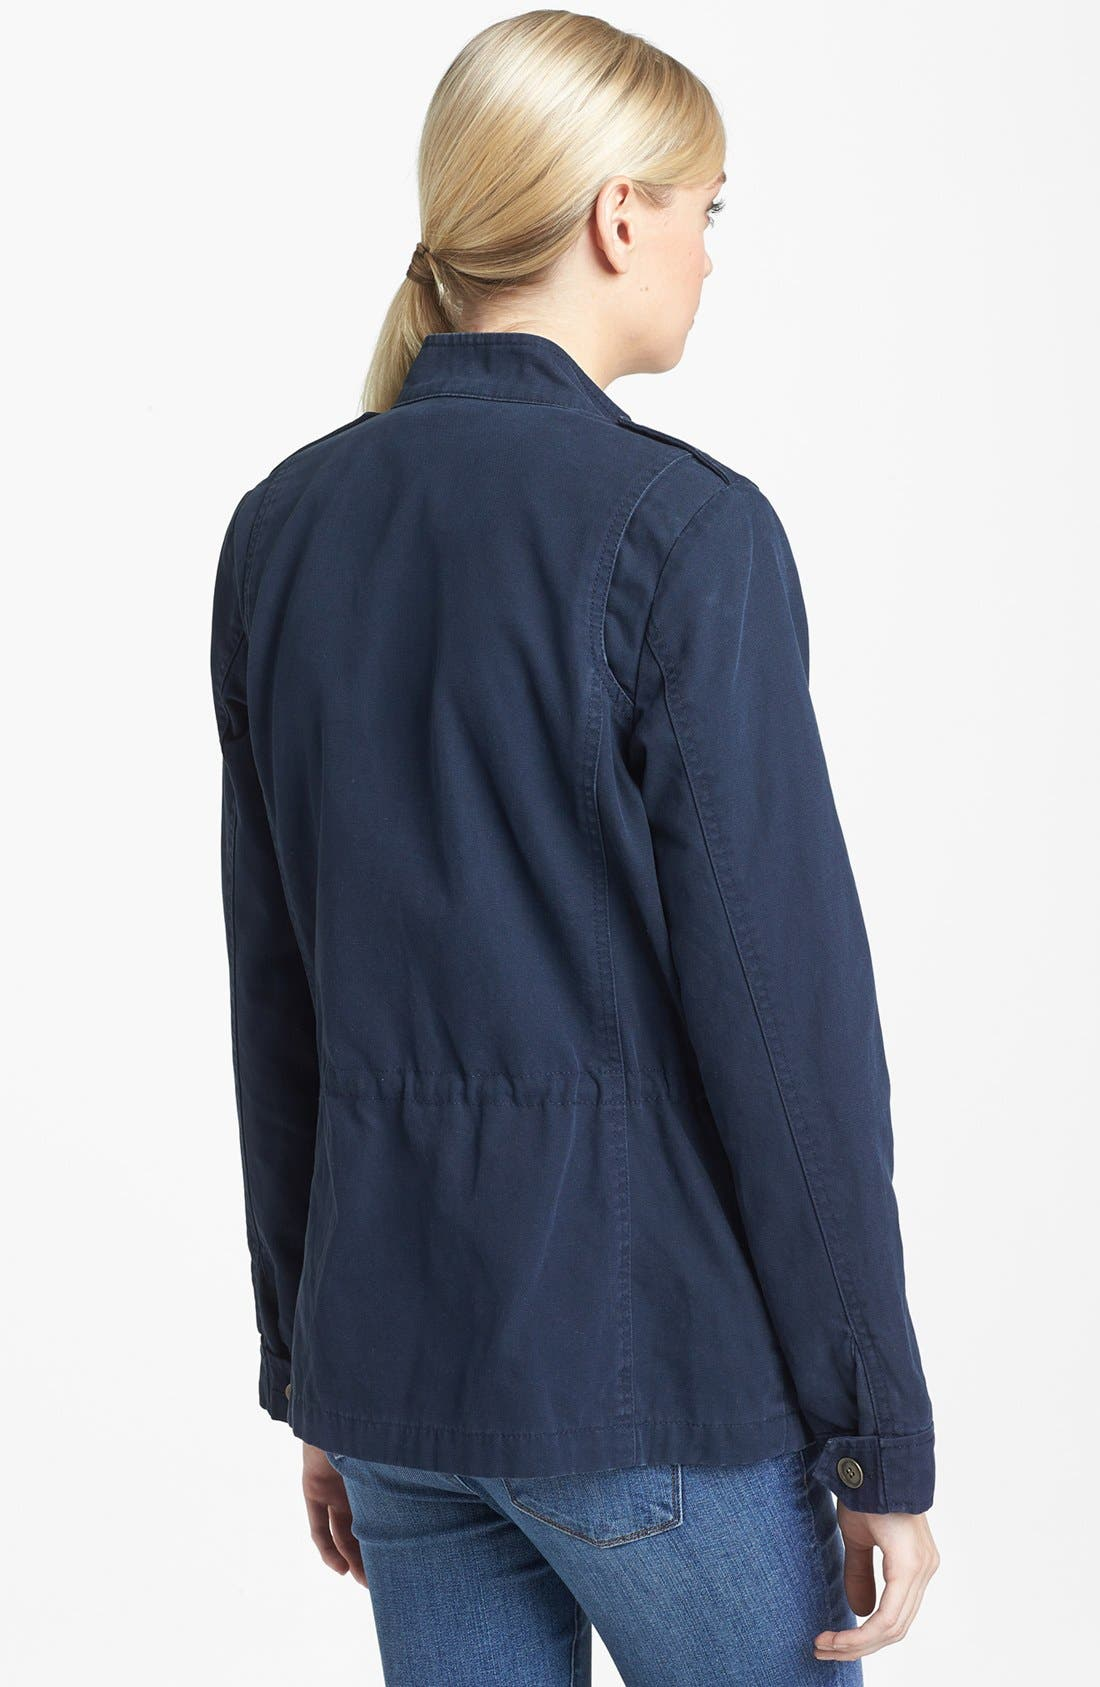 'Expedition' Cotton Twill Jacket,                             Alternate thumbnail 9, color,